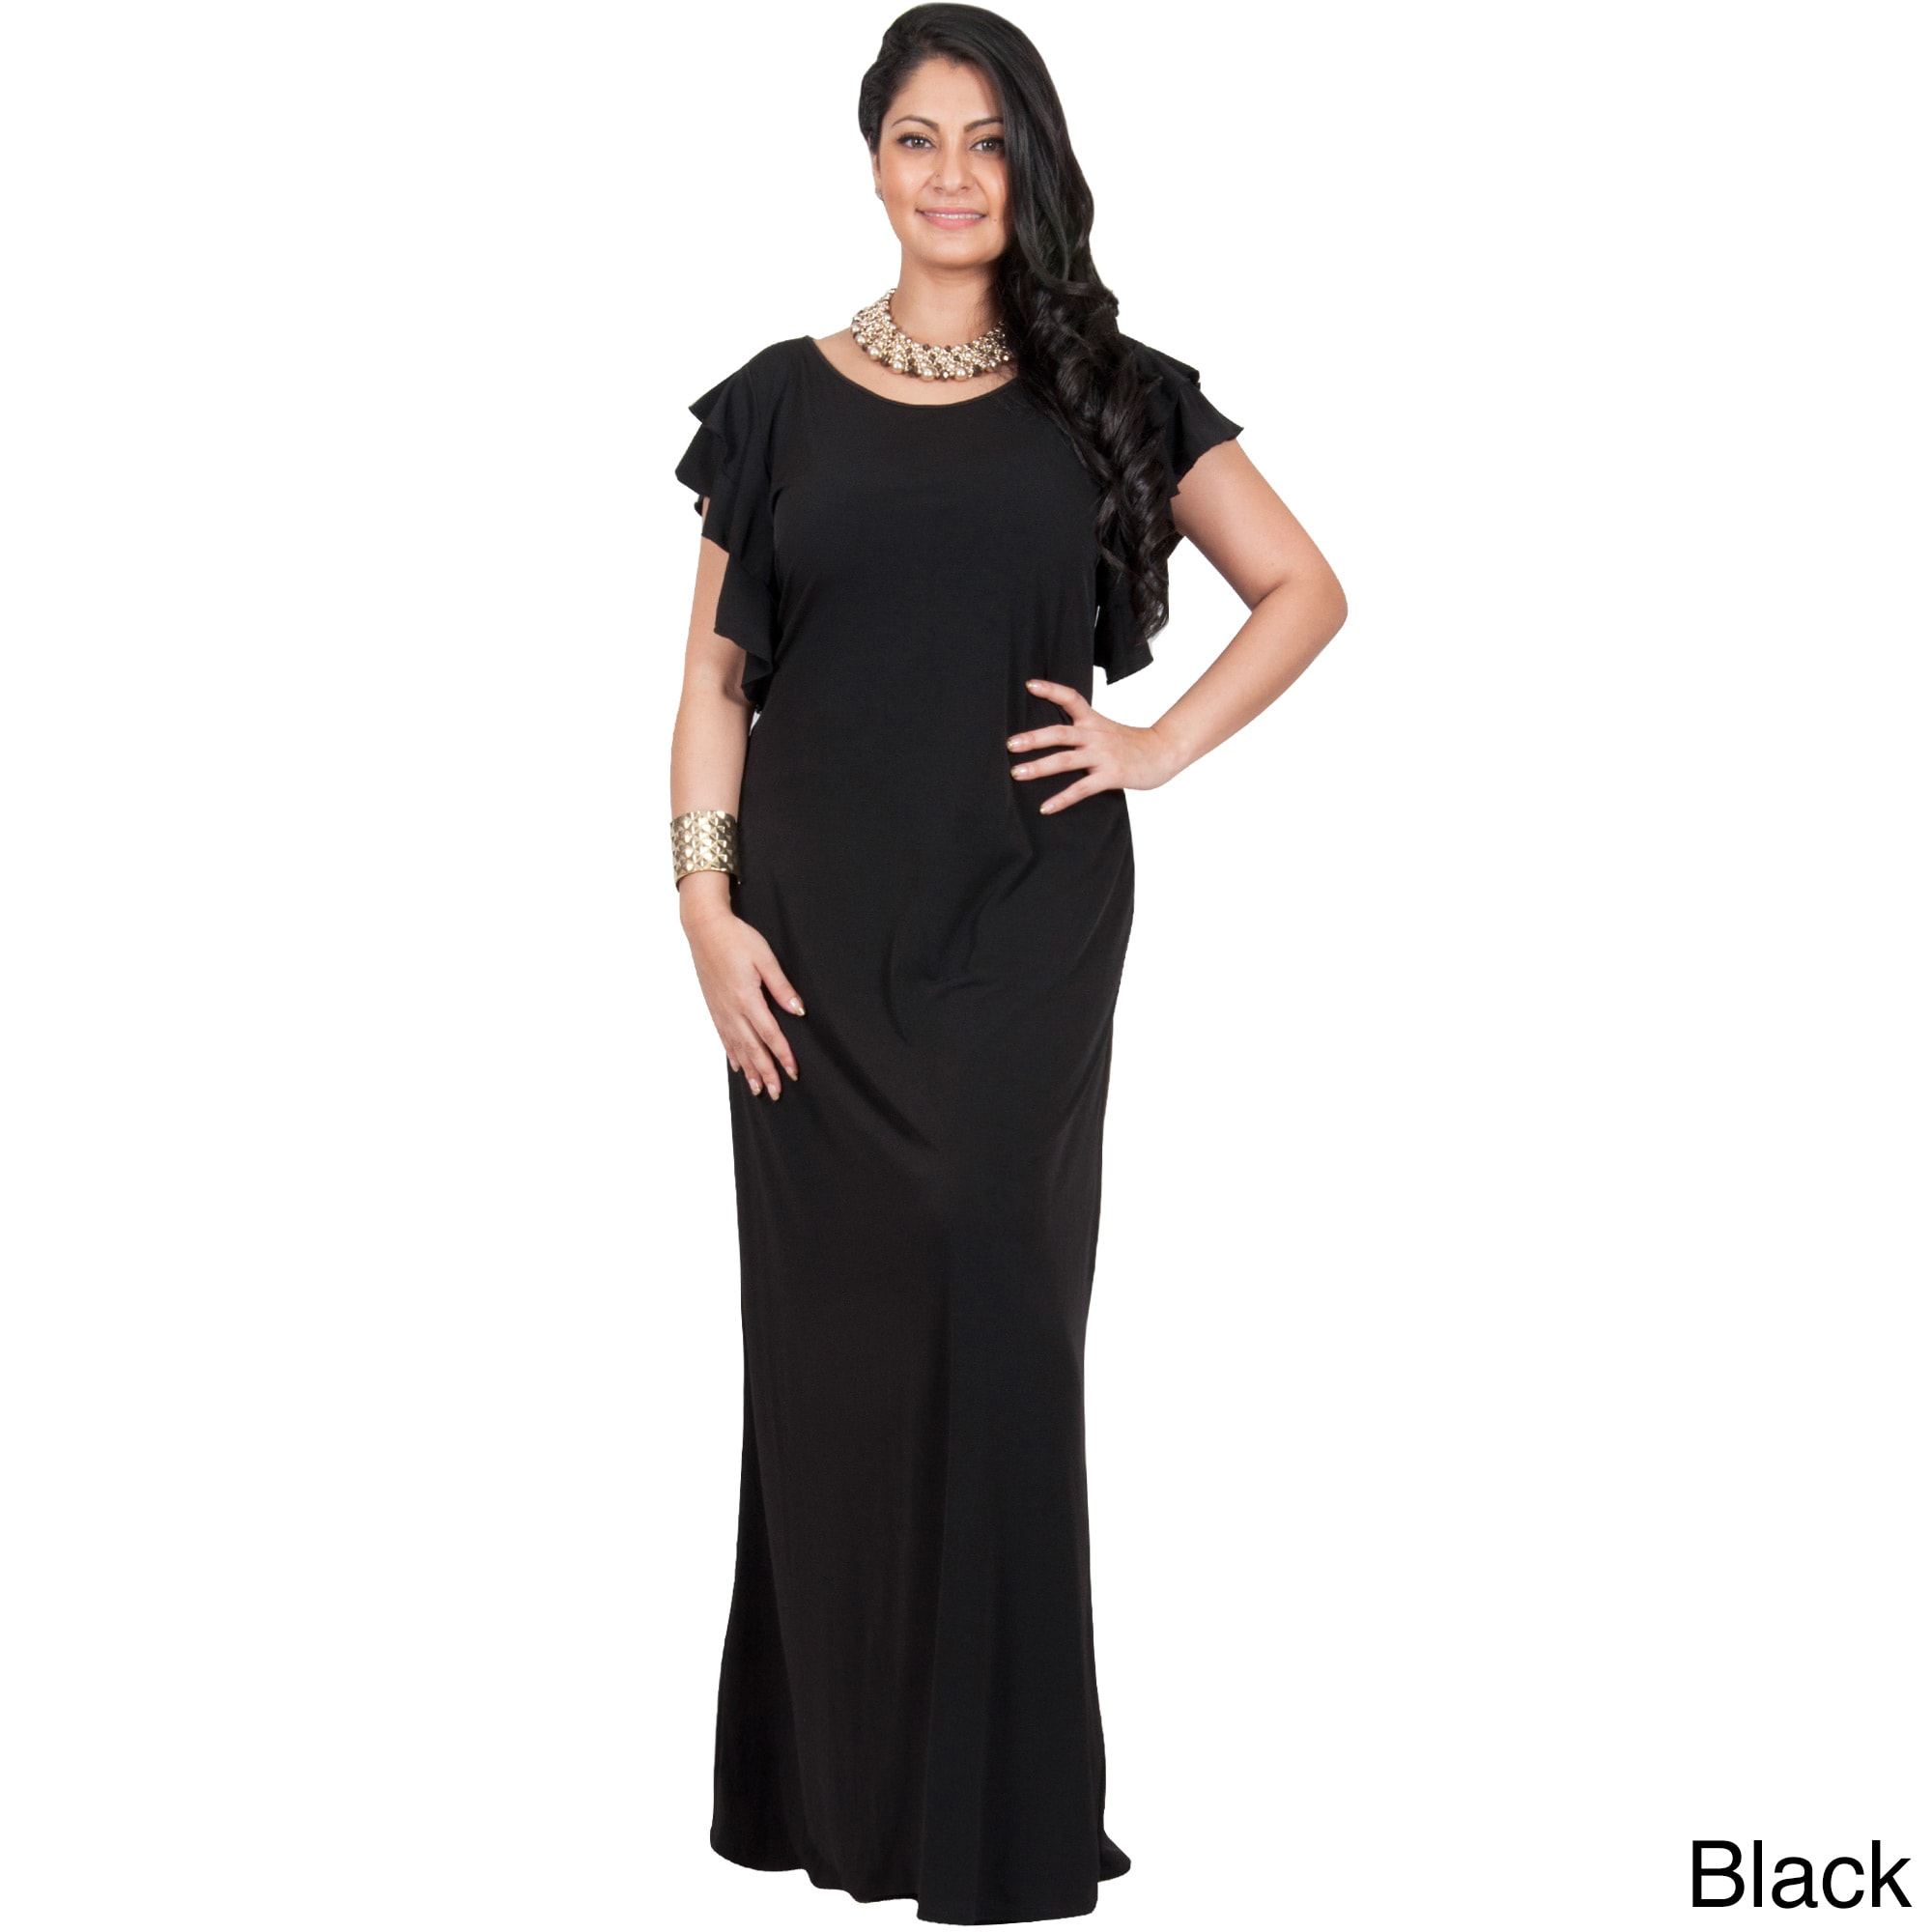 9238845c981b9 KOH KOH Women s Plus Size Cocktail Maxi Dress with Round Neck and Ruffled  Cap Sleeves